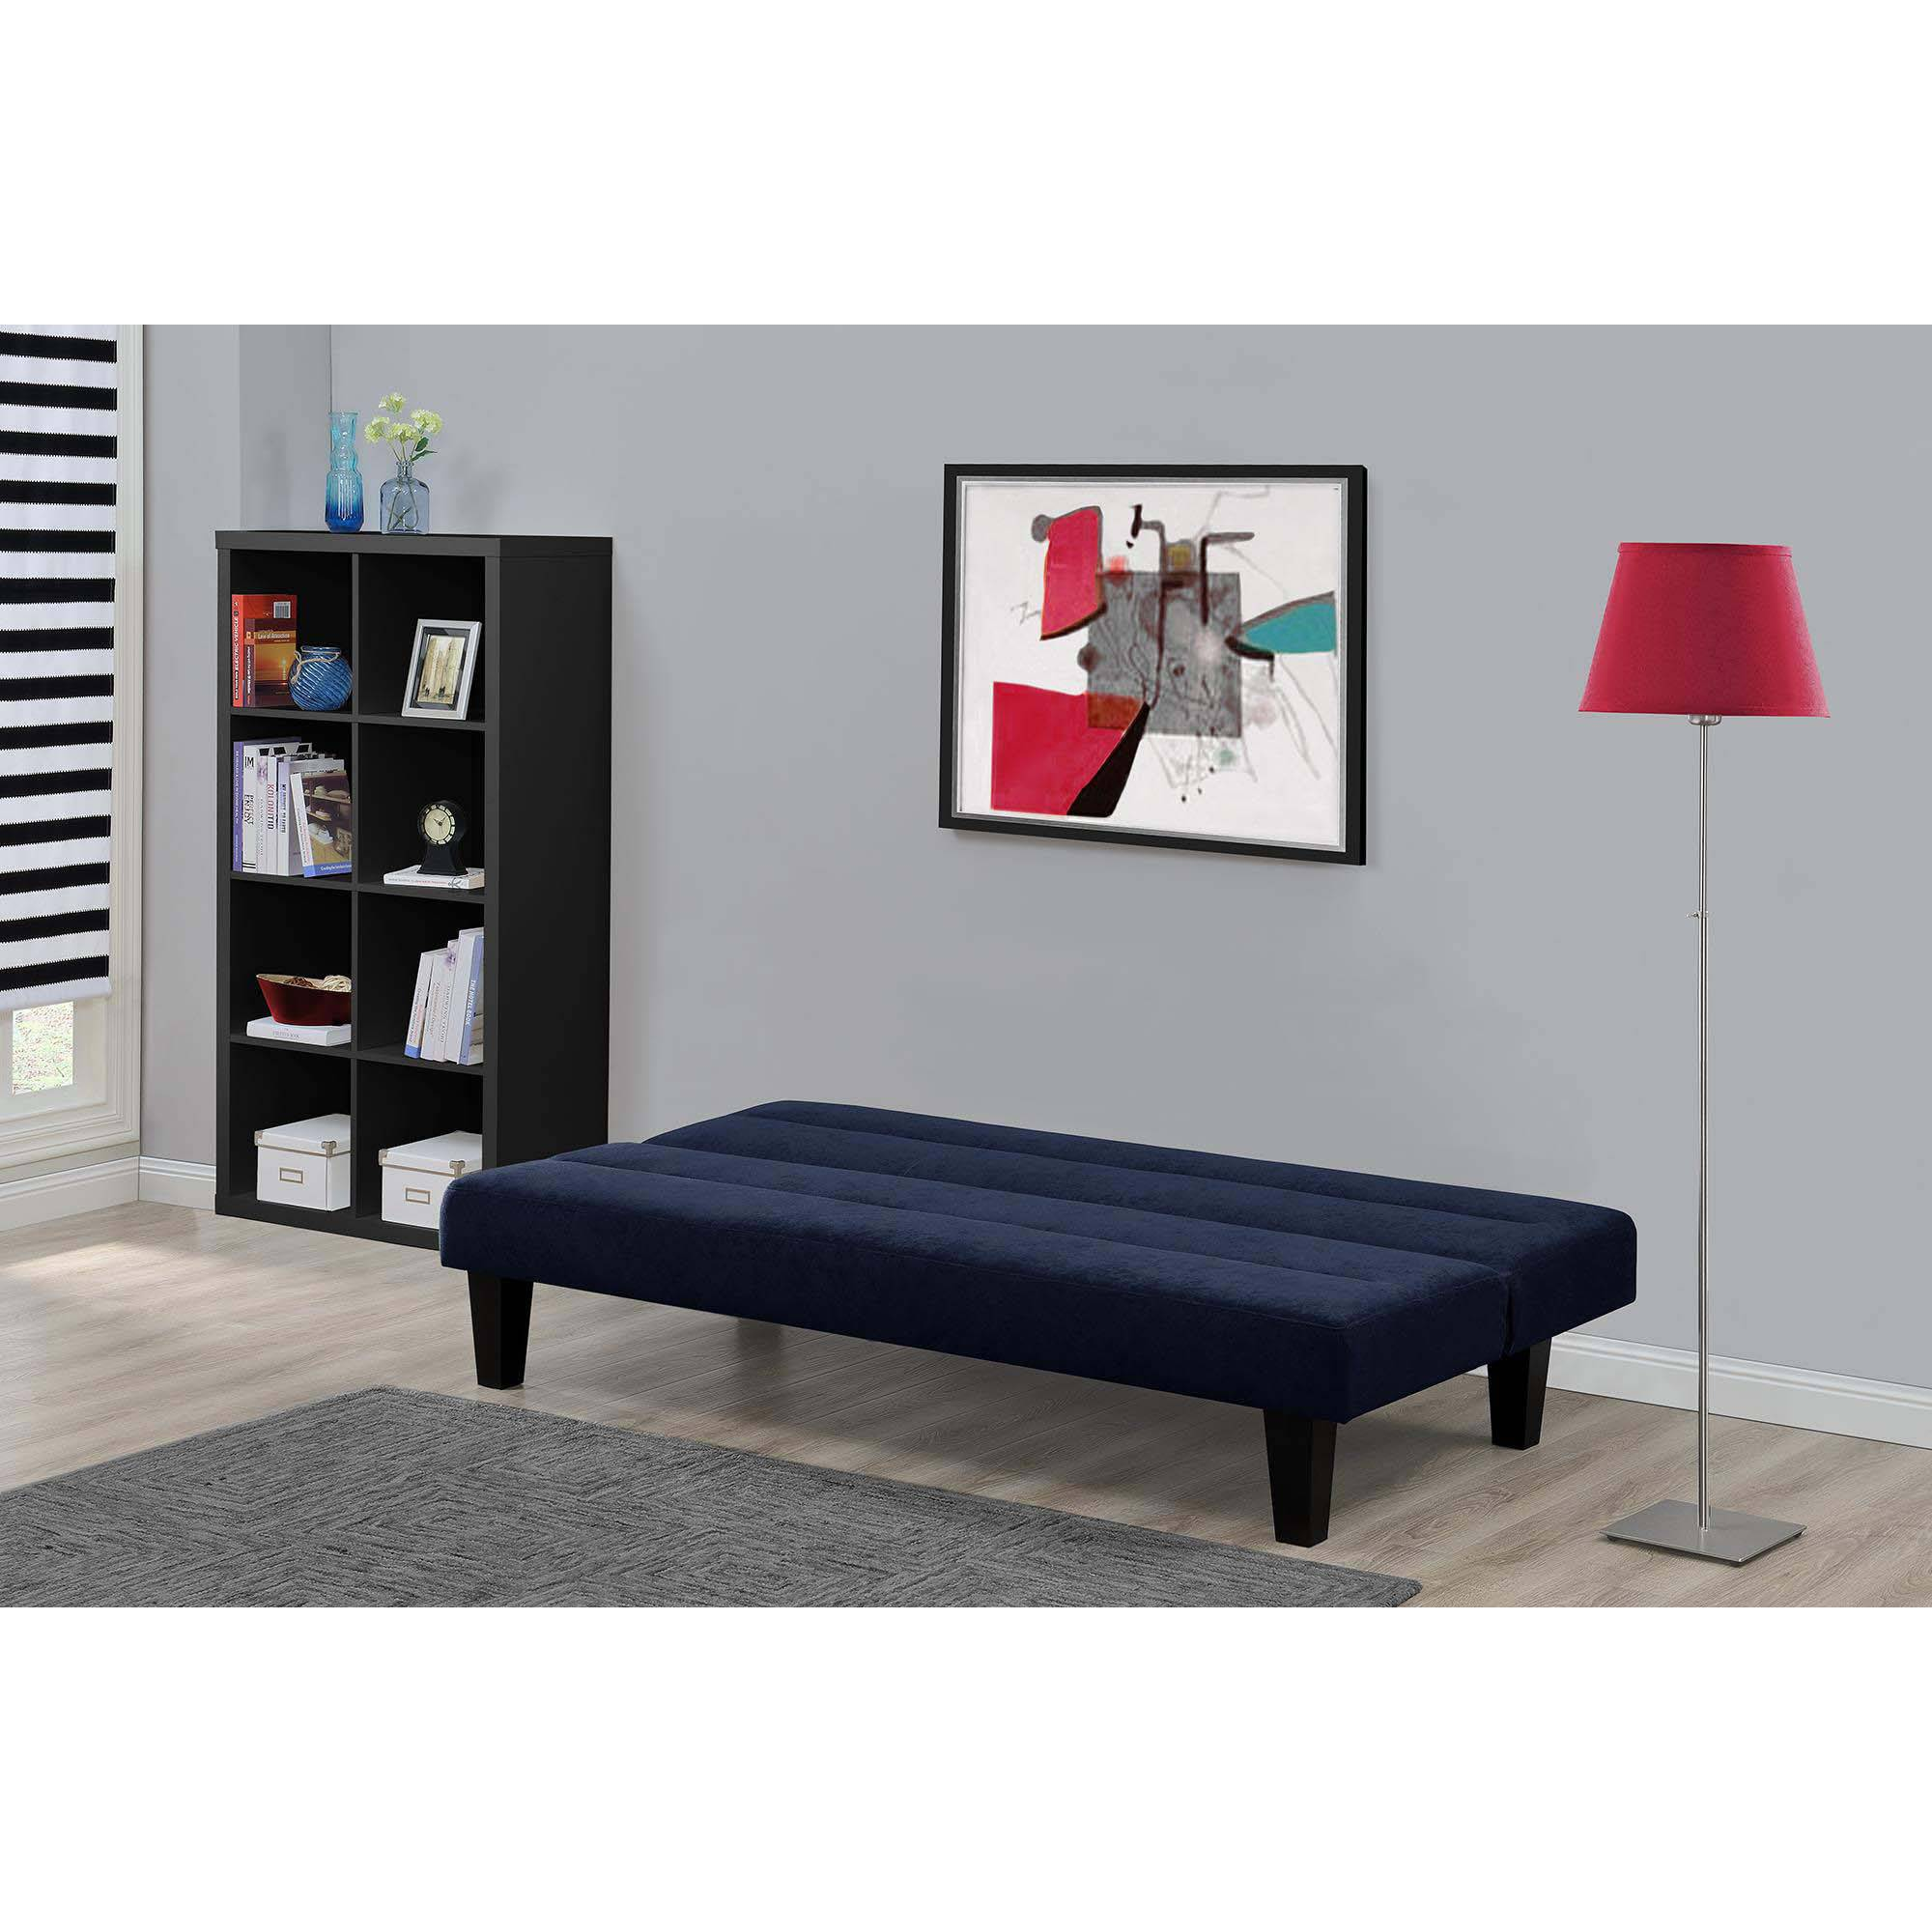 kebo twin size futon sofa bed brown black blue gray couch sleeper  - kebotwinsizefutonsofabedbrownblack